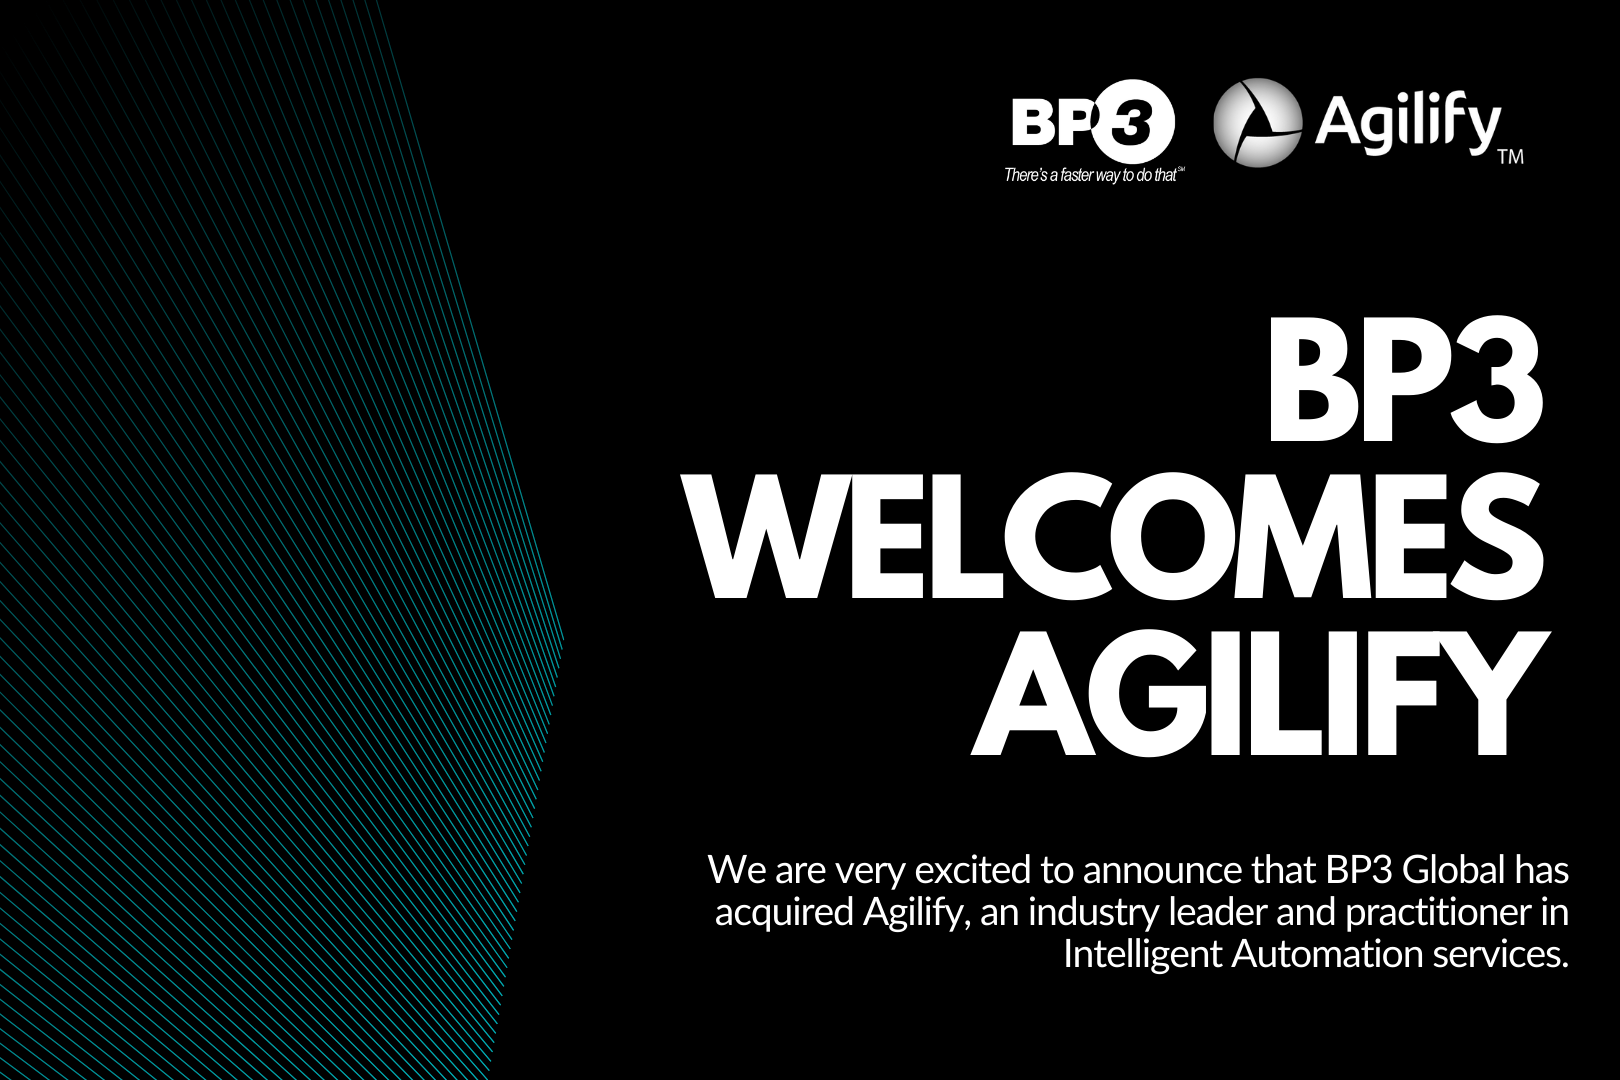 BP3 is excited to announce the acquisition of Agilify, an industry leader and practitioner in Intelligent Automation services. This acquisition will add an award-winning practitioner team to BP3's existing intelligent automation business and expand BP3's skillset to build and implement more high-quality automations than ever before. Learn more today!